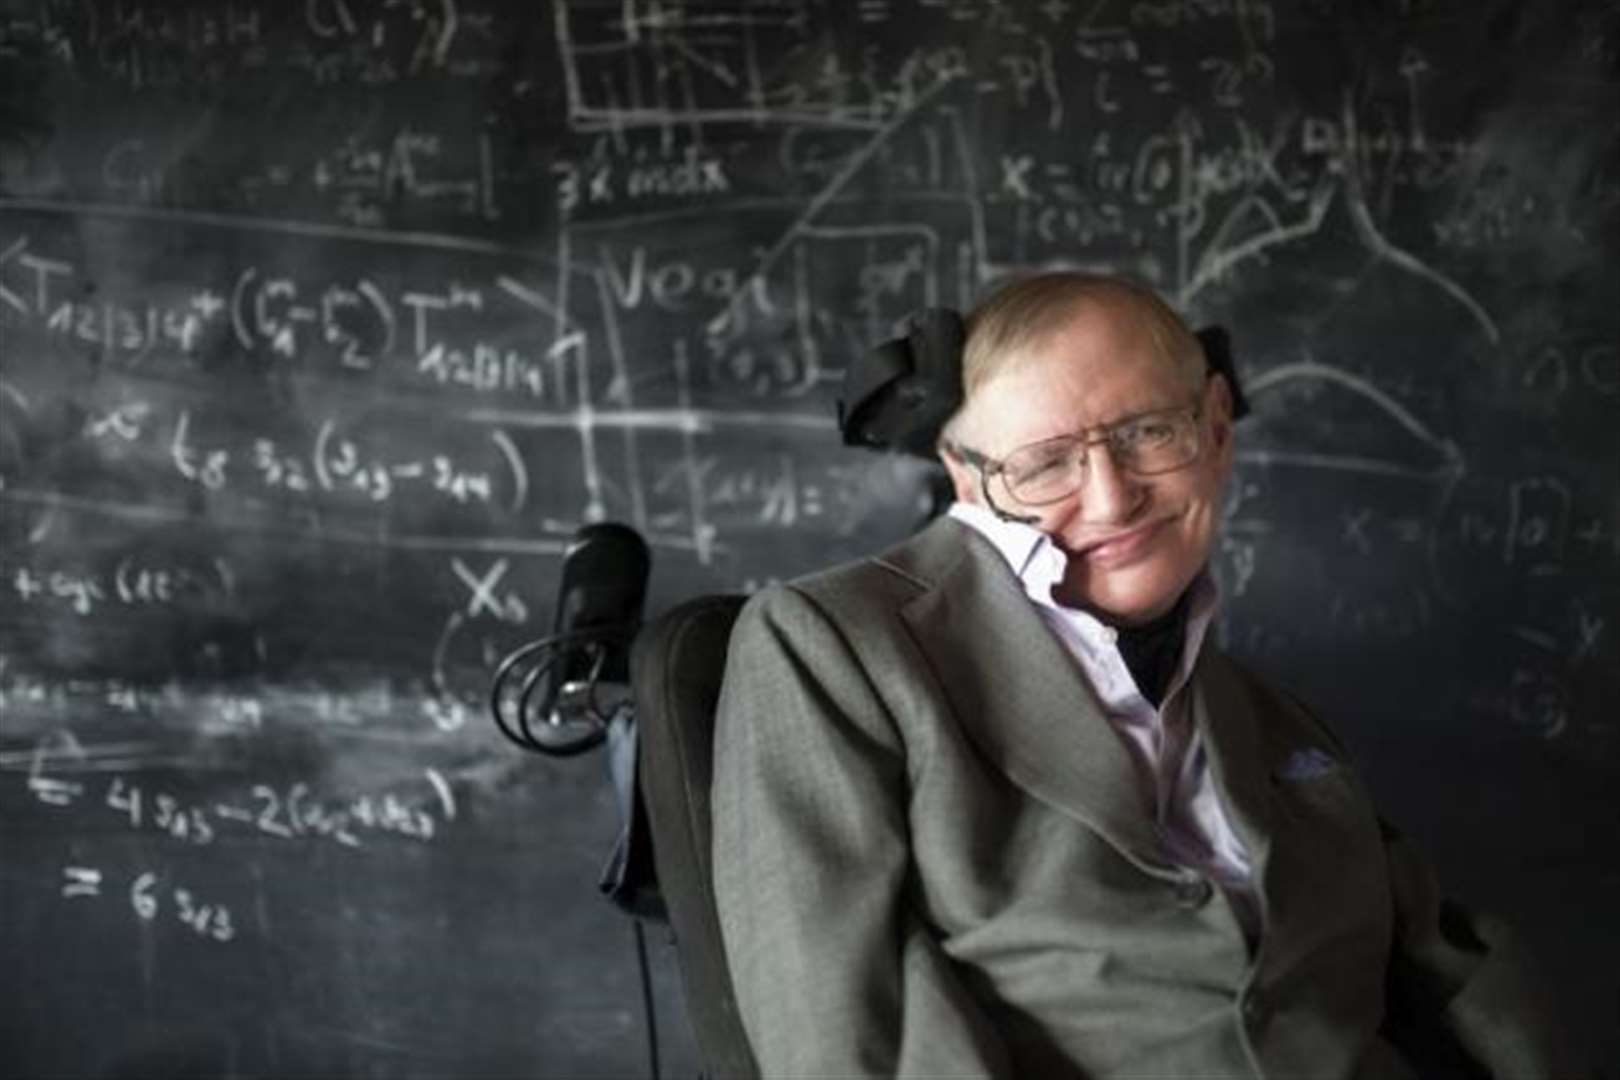 The 10 questions Professor Stephen Hawking tackles in his final book, Brief Answers to the Big Questions